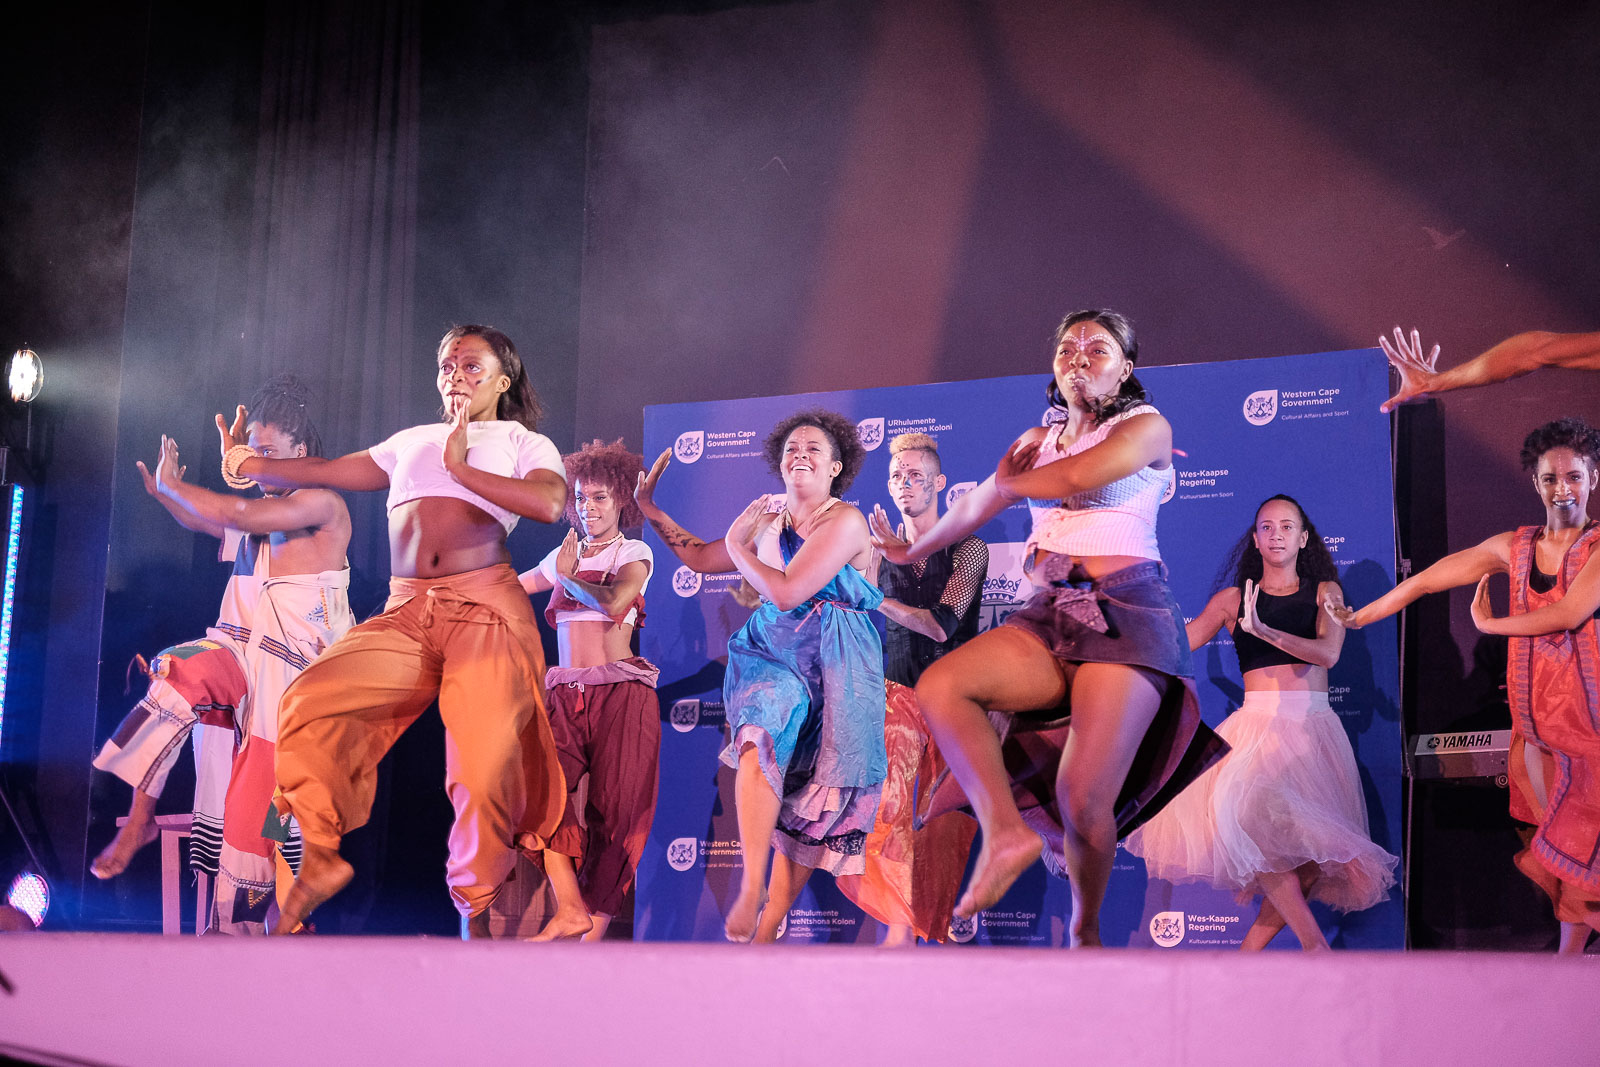 Various artists entertained the guests during the evening of the Cultural Affairs Awards Ceremony in Cape Town